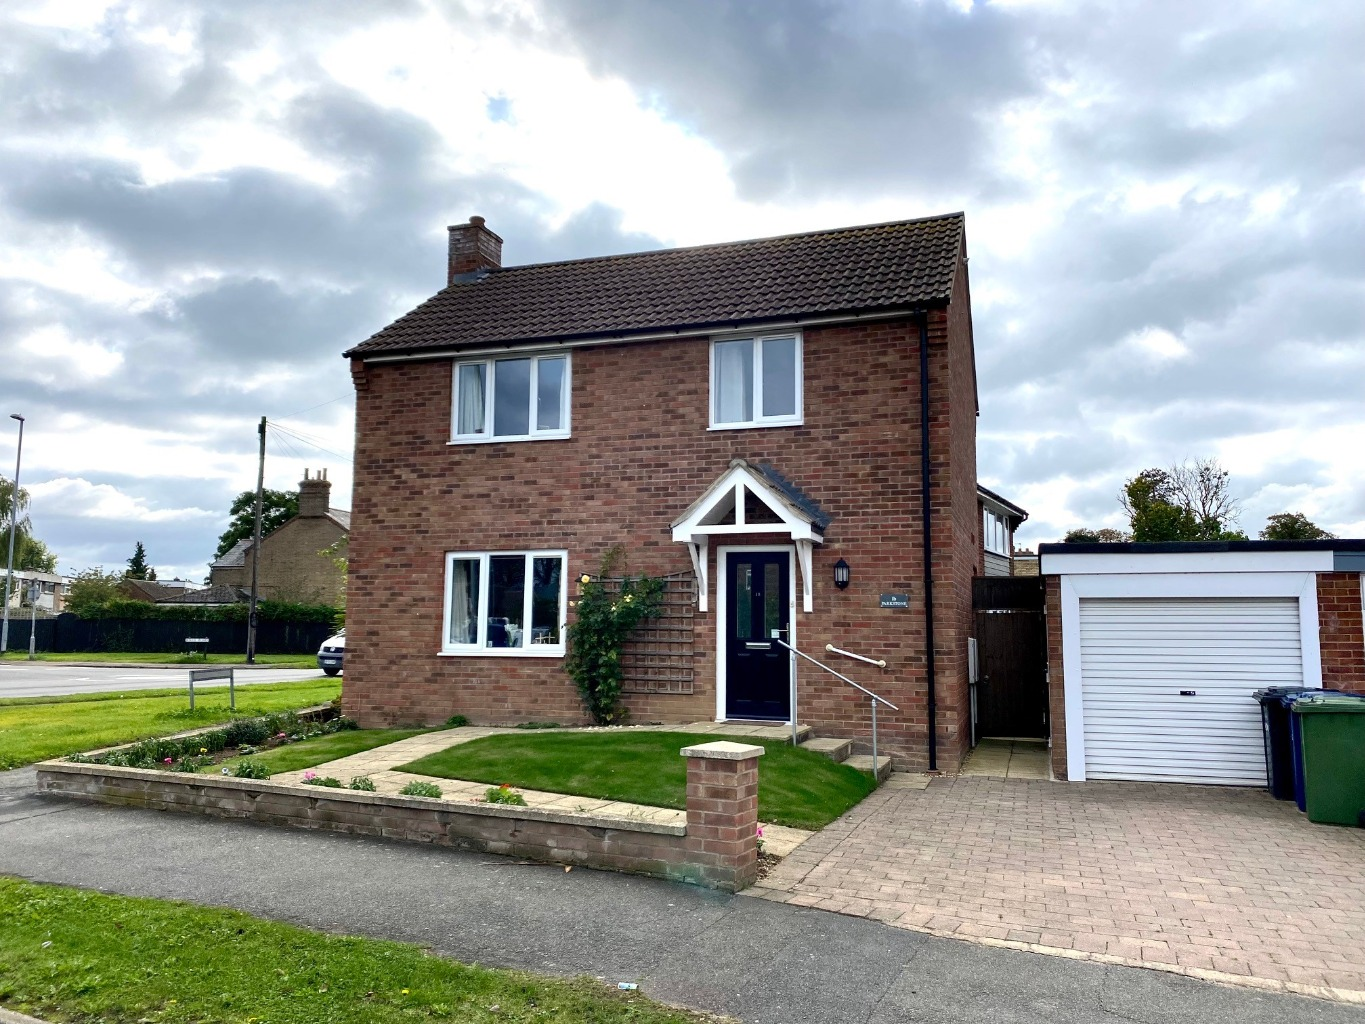 3 bed  for sale in Orchard Road, St. Neots, PE19